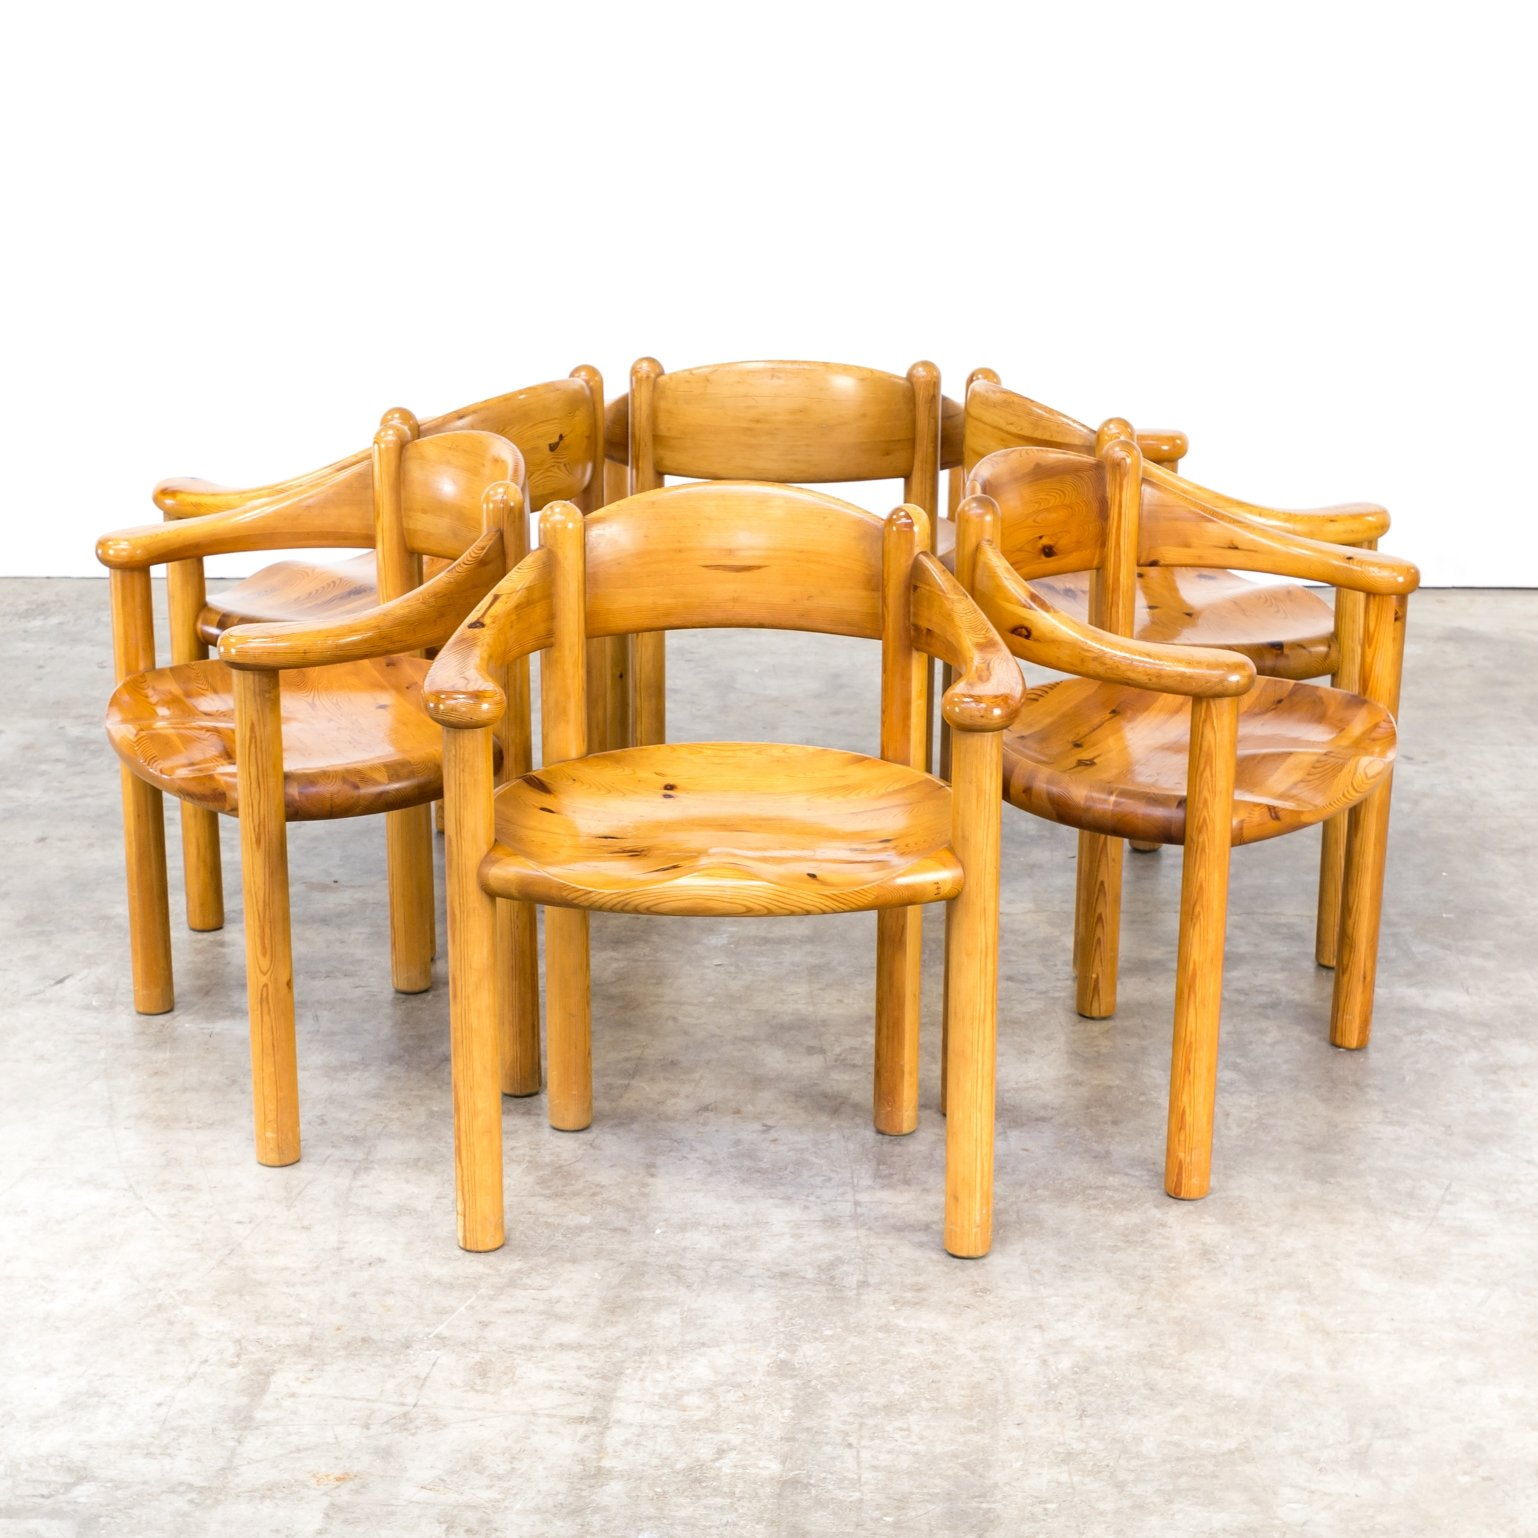 60s Rainer Daumiller Pine Dining Chairs Set/6